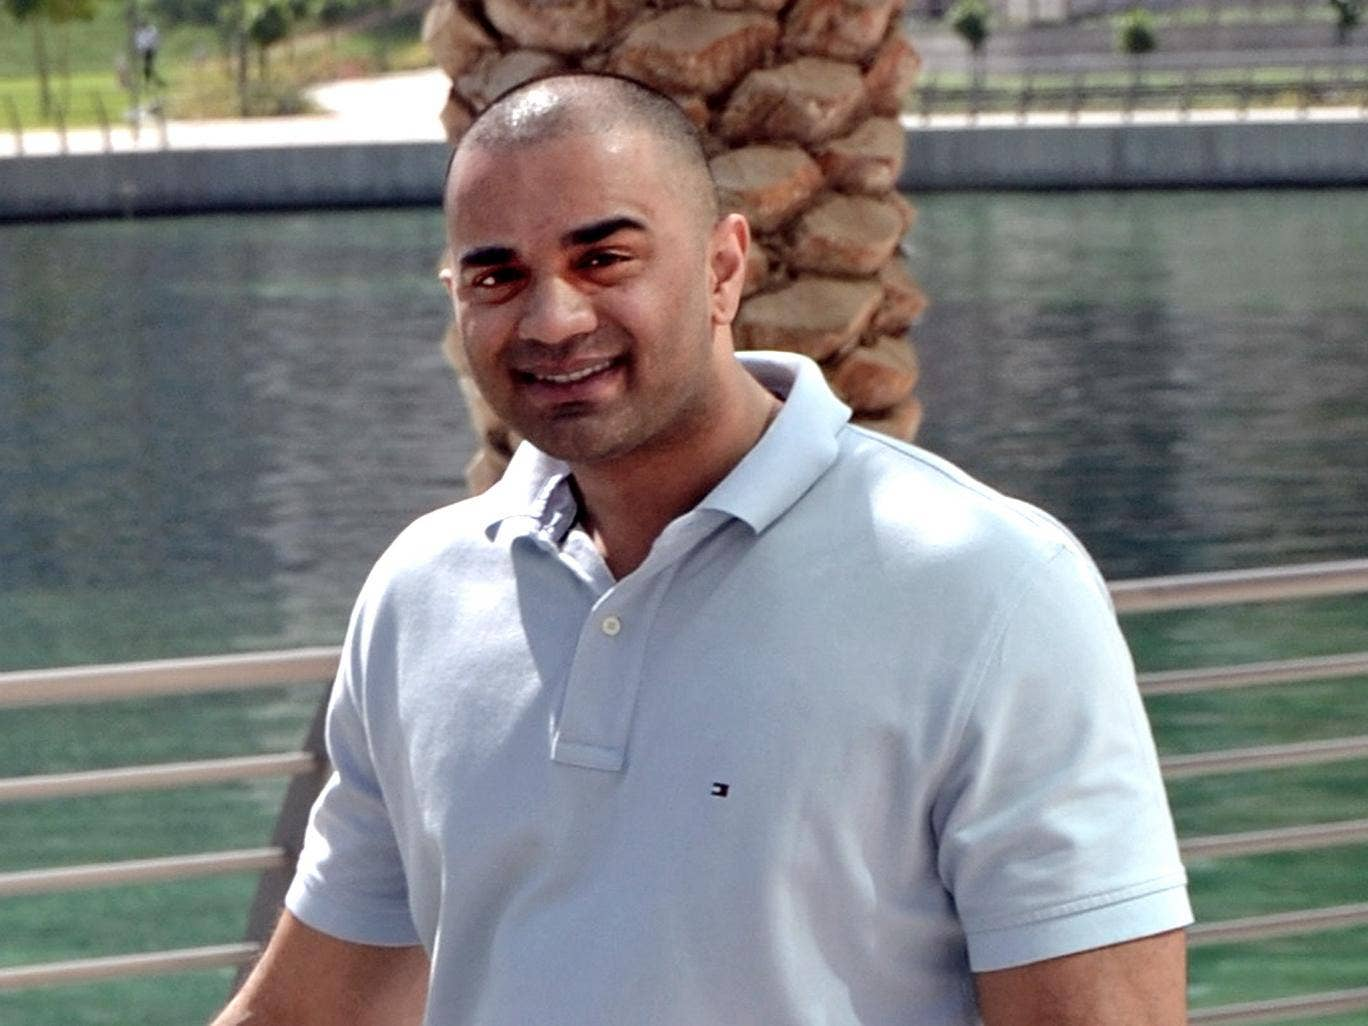 32-year-old Hasnain Ali was allegedly tortured by authorities in Dubai